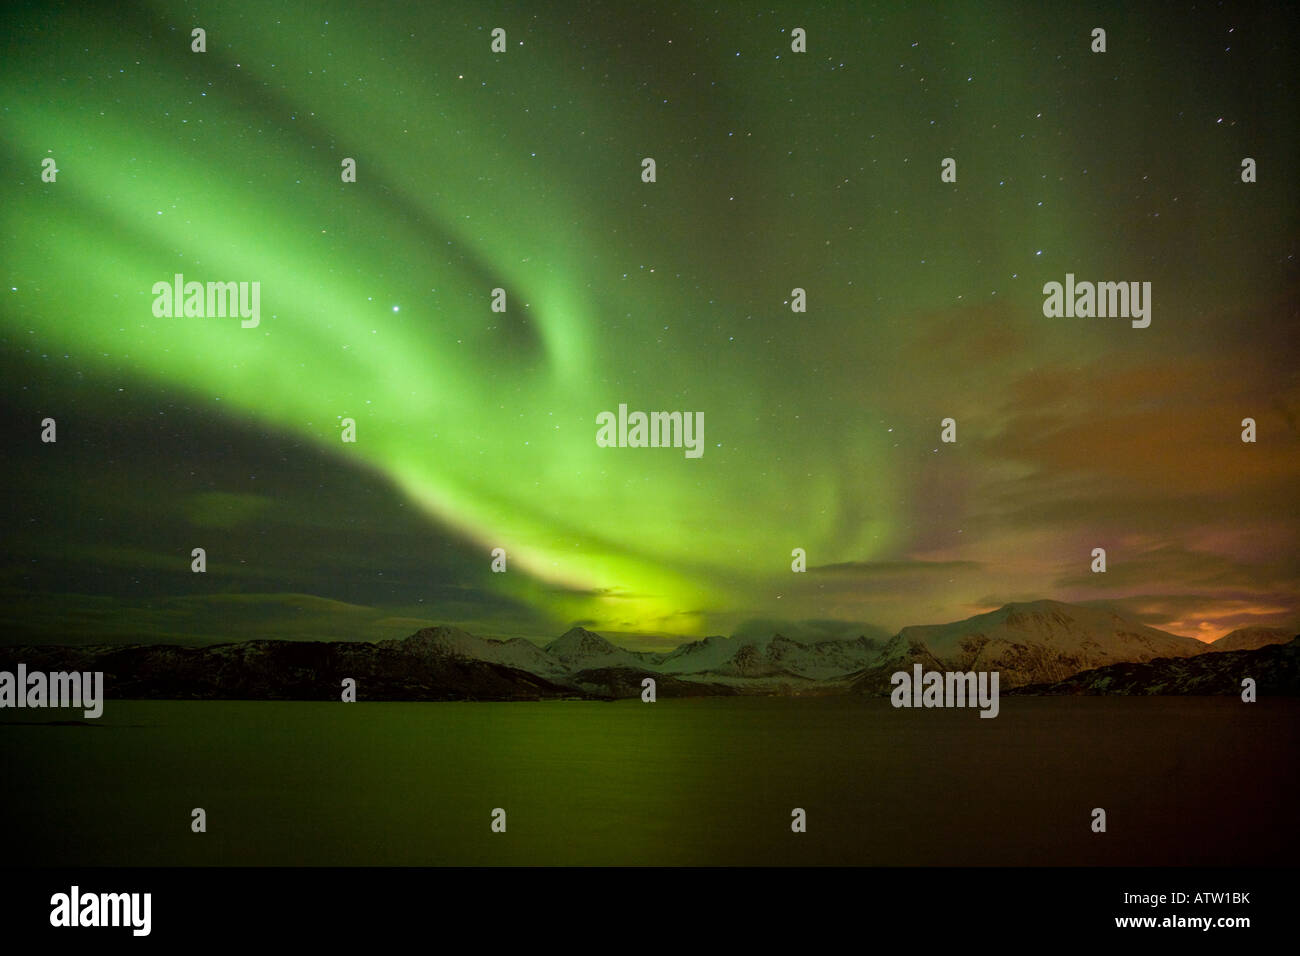 Spectacular Aurora Borealis (Northern Lights) over Sommarøy, Norway - Stock Image